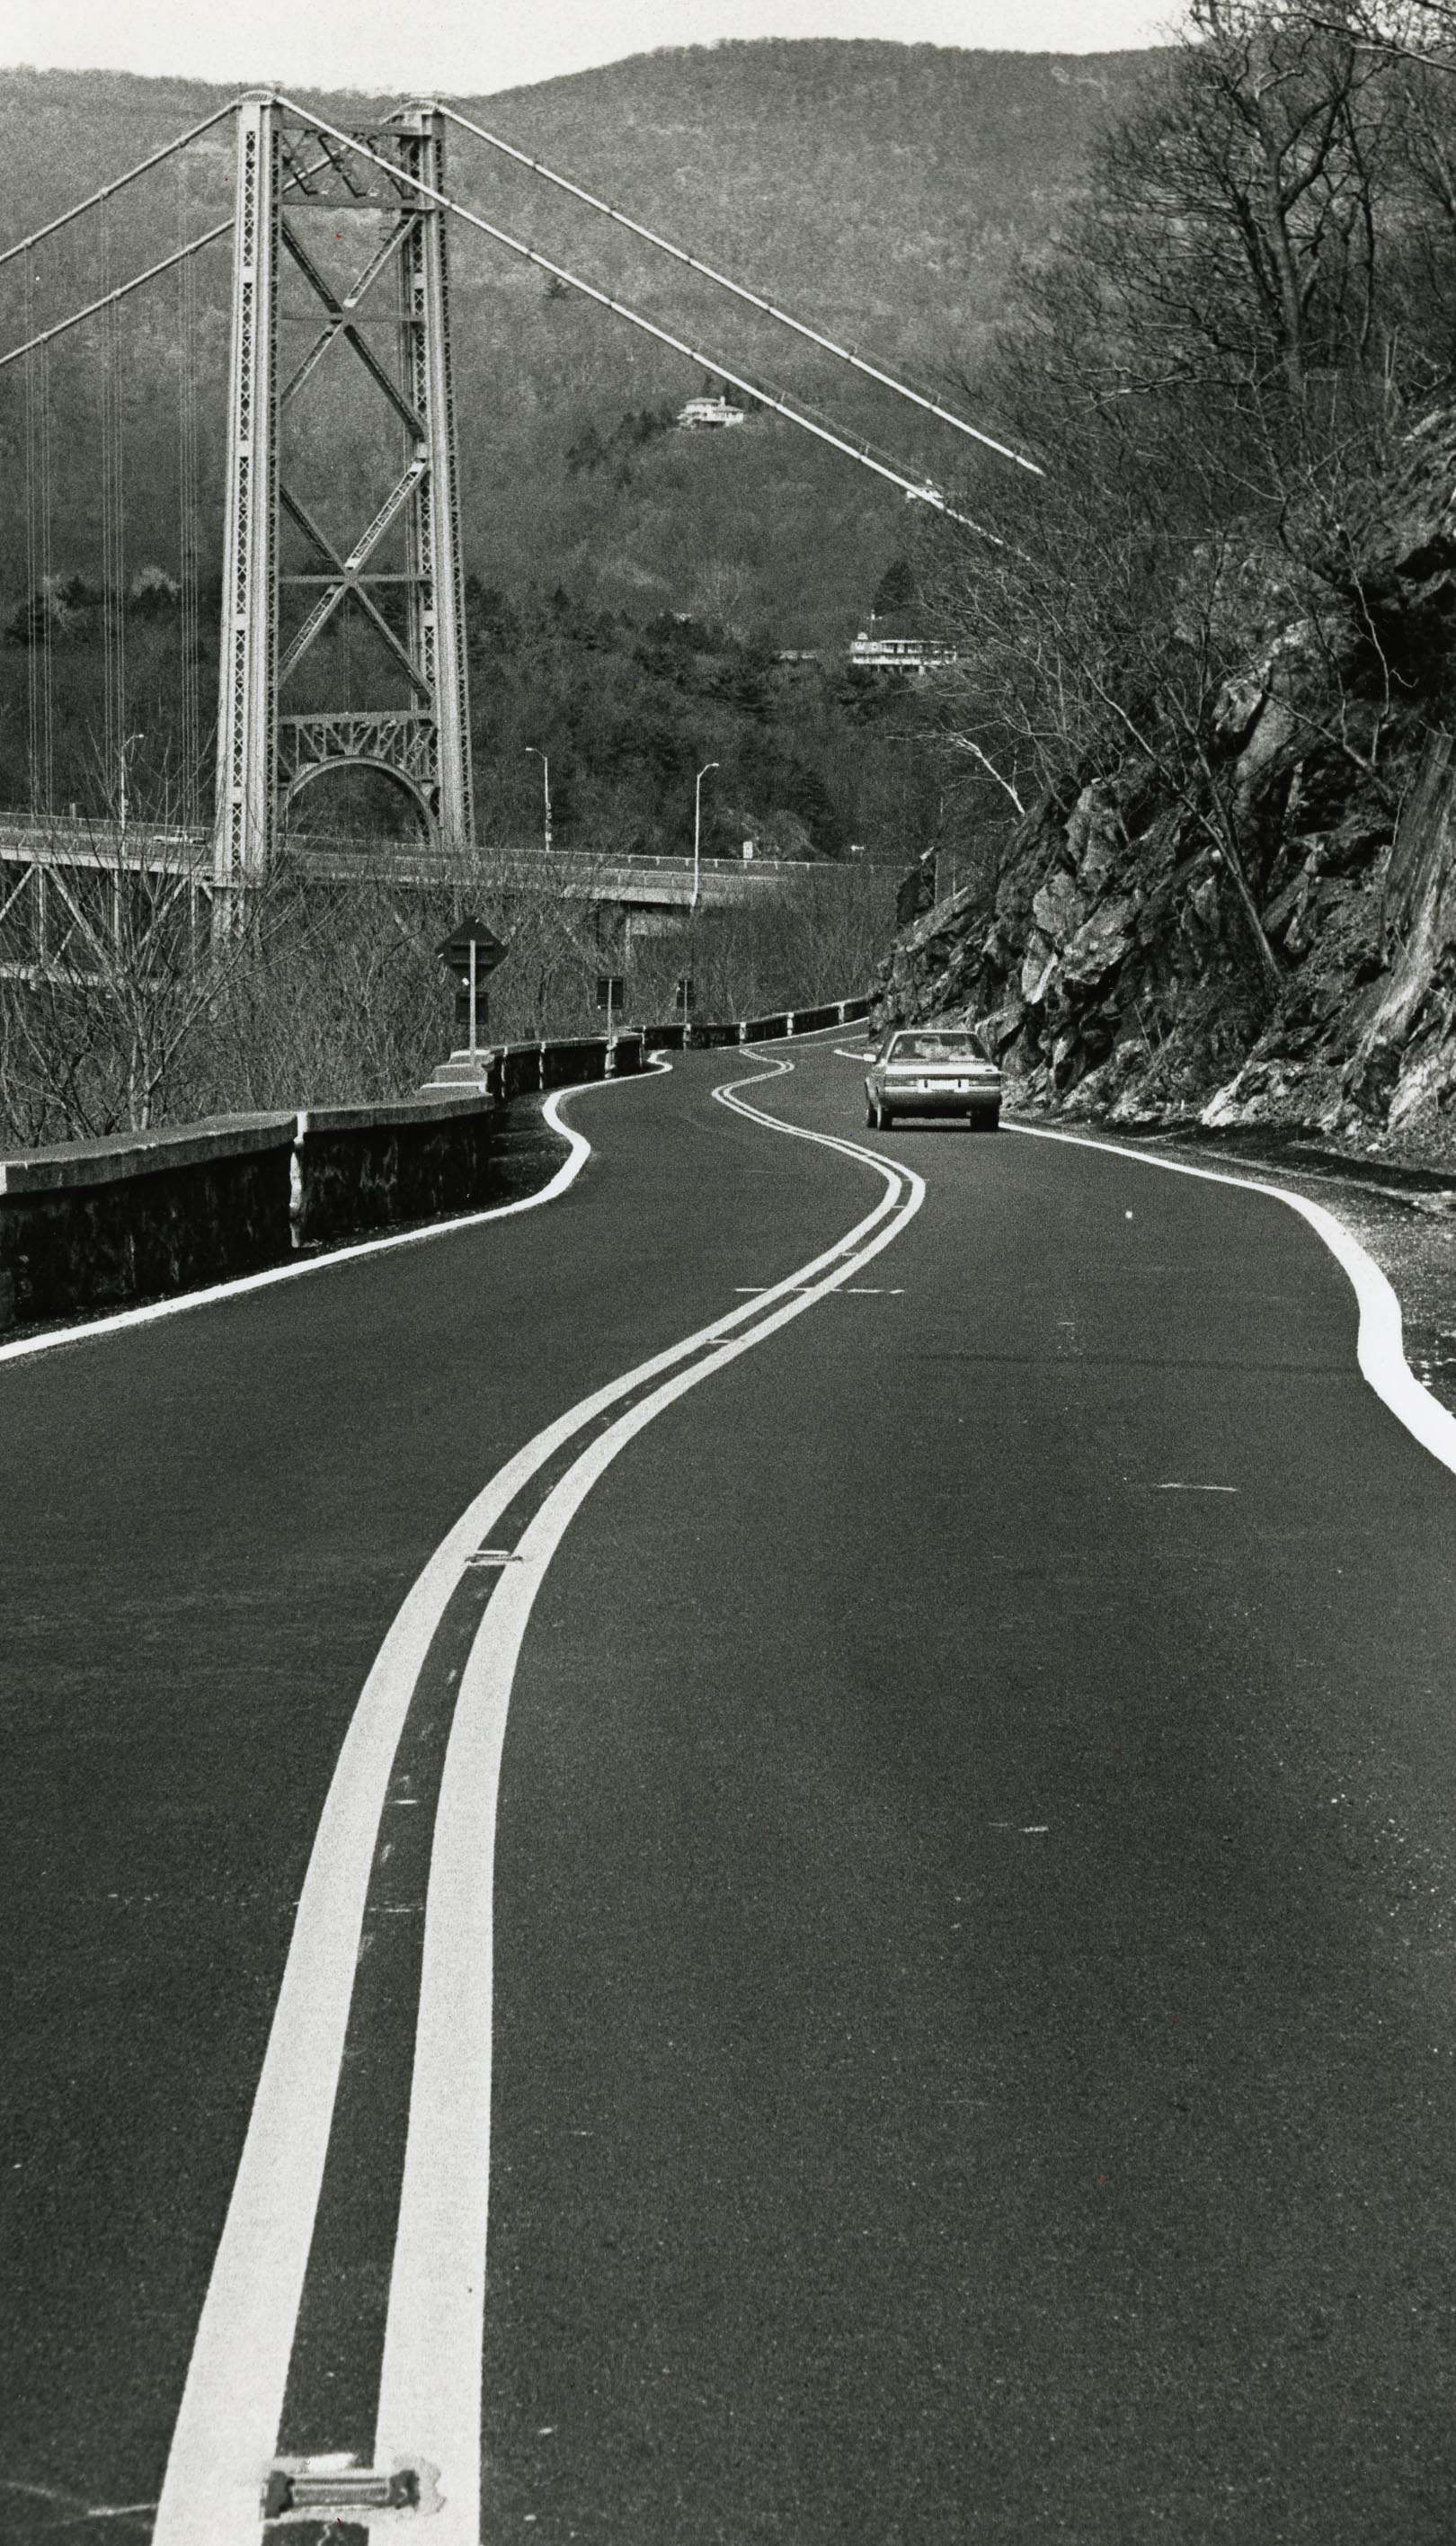 Looking north on Bear Mountain Road toward Bear Mountain Bridge in 1991.